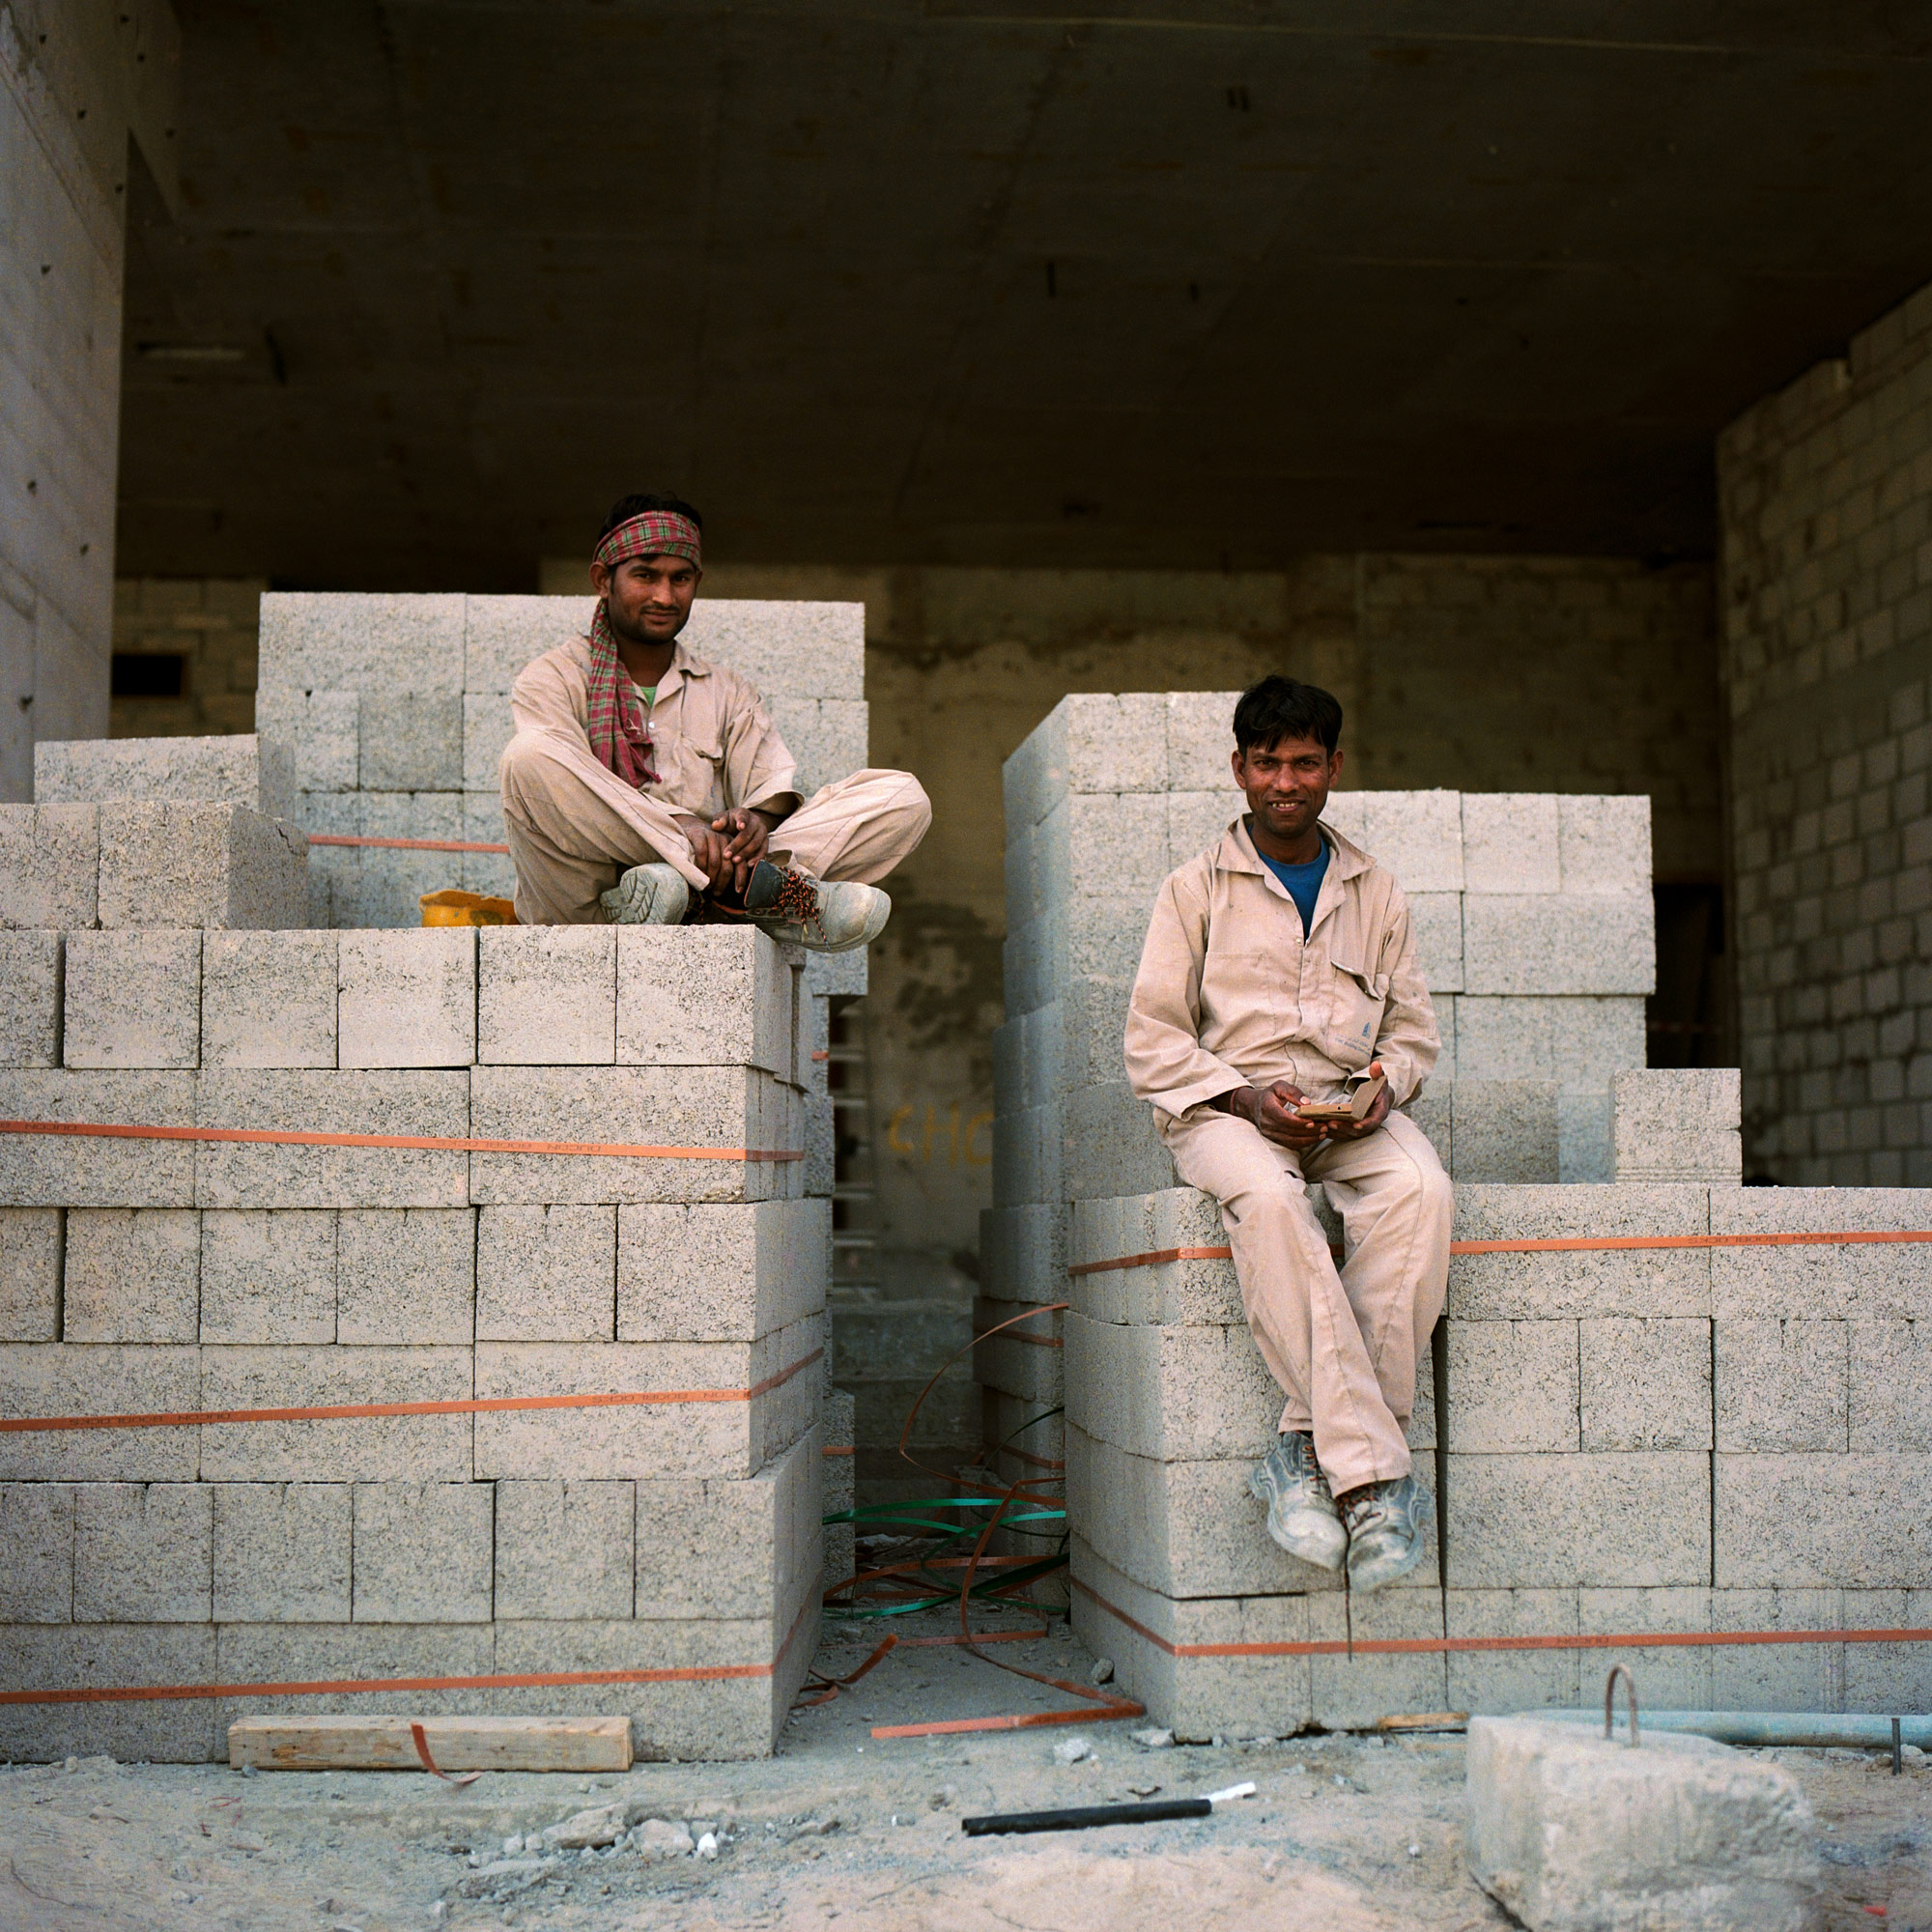 Two Indian construction workers sitting on a pile of breeze concrete building block on site in Dubai, Dubai Labourers